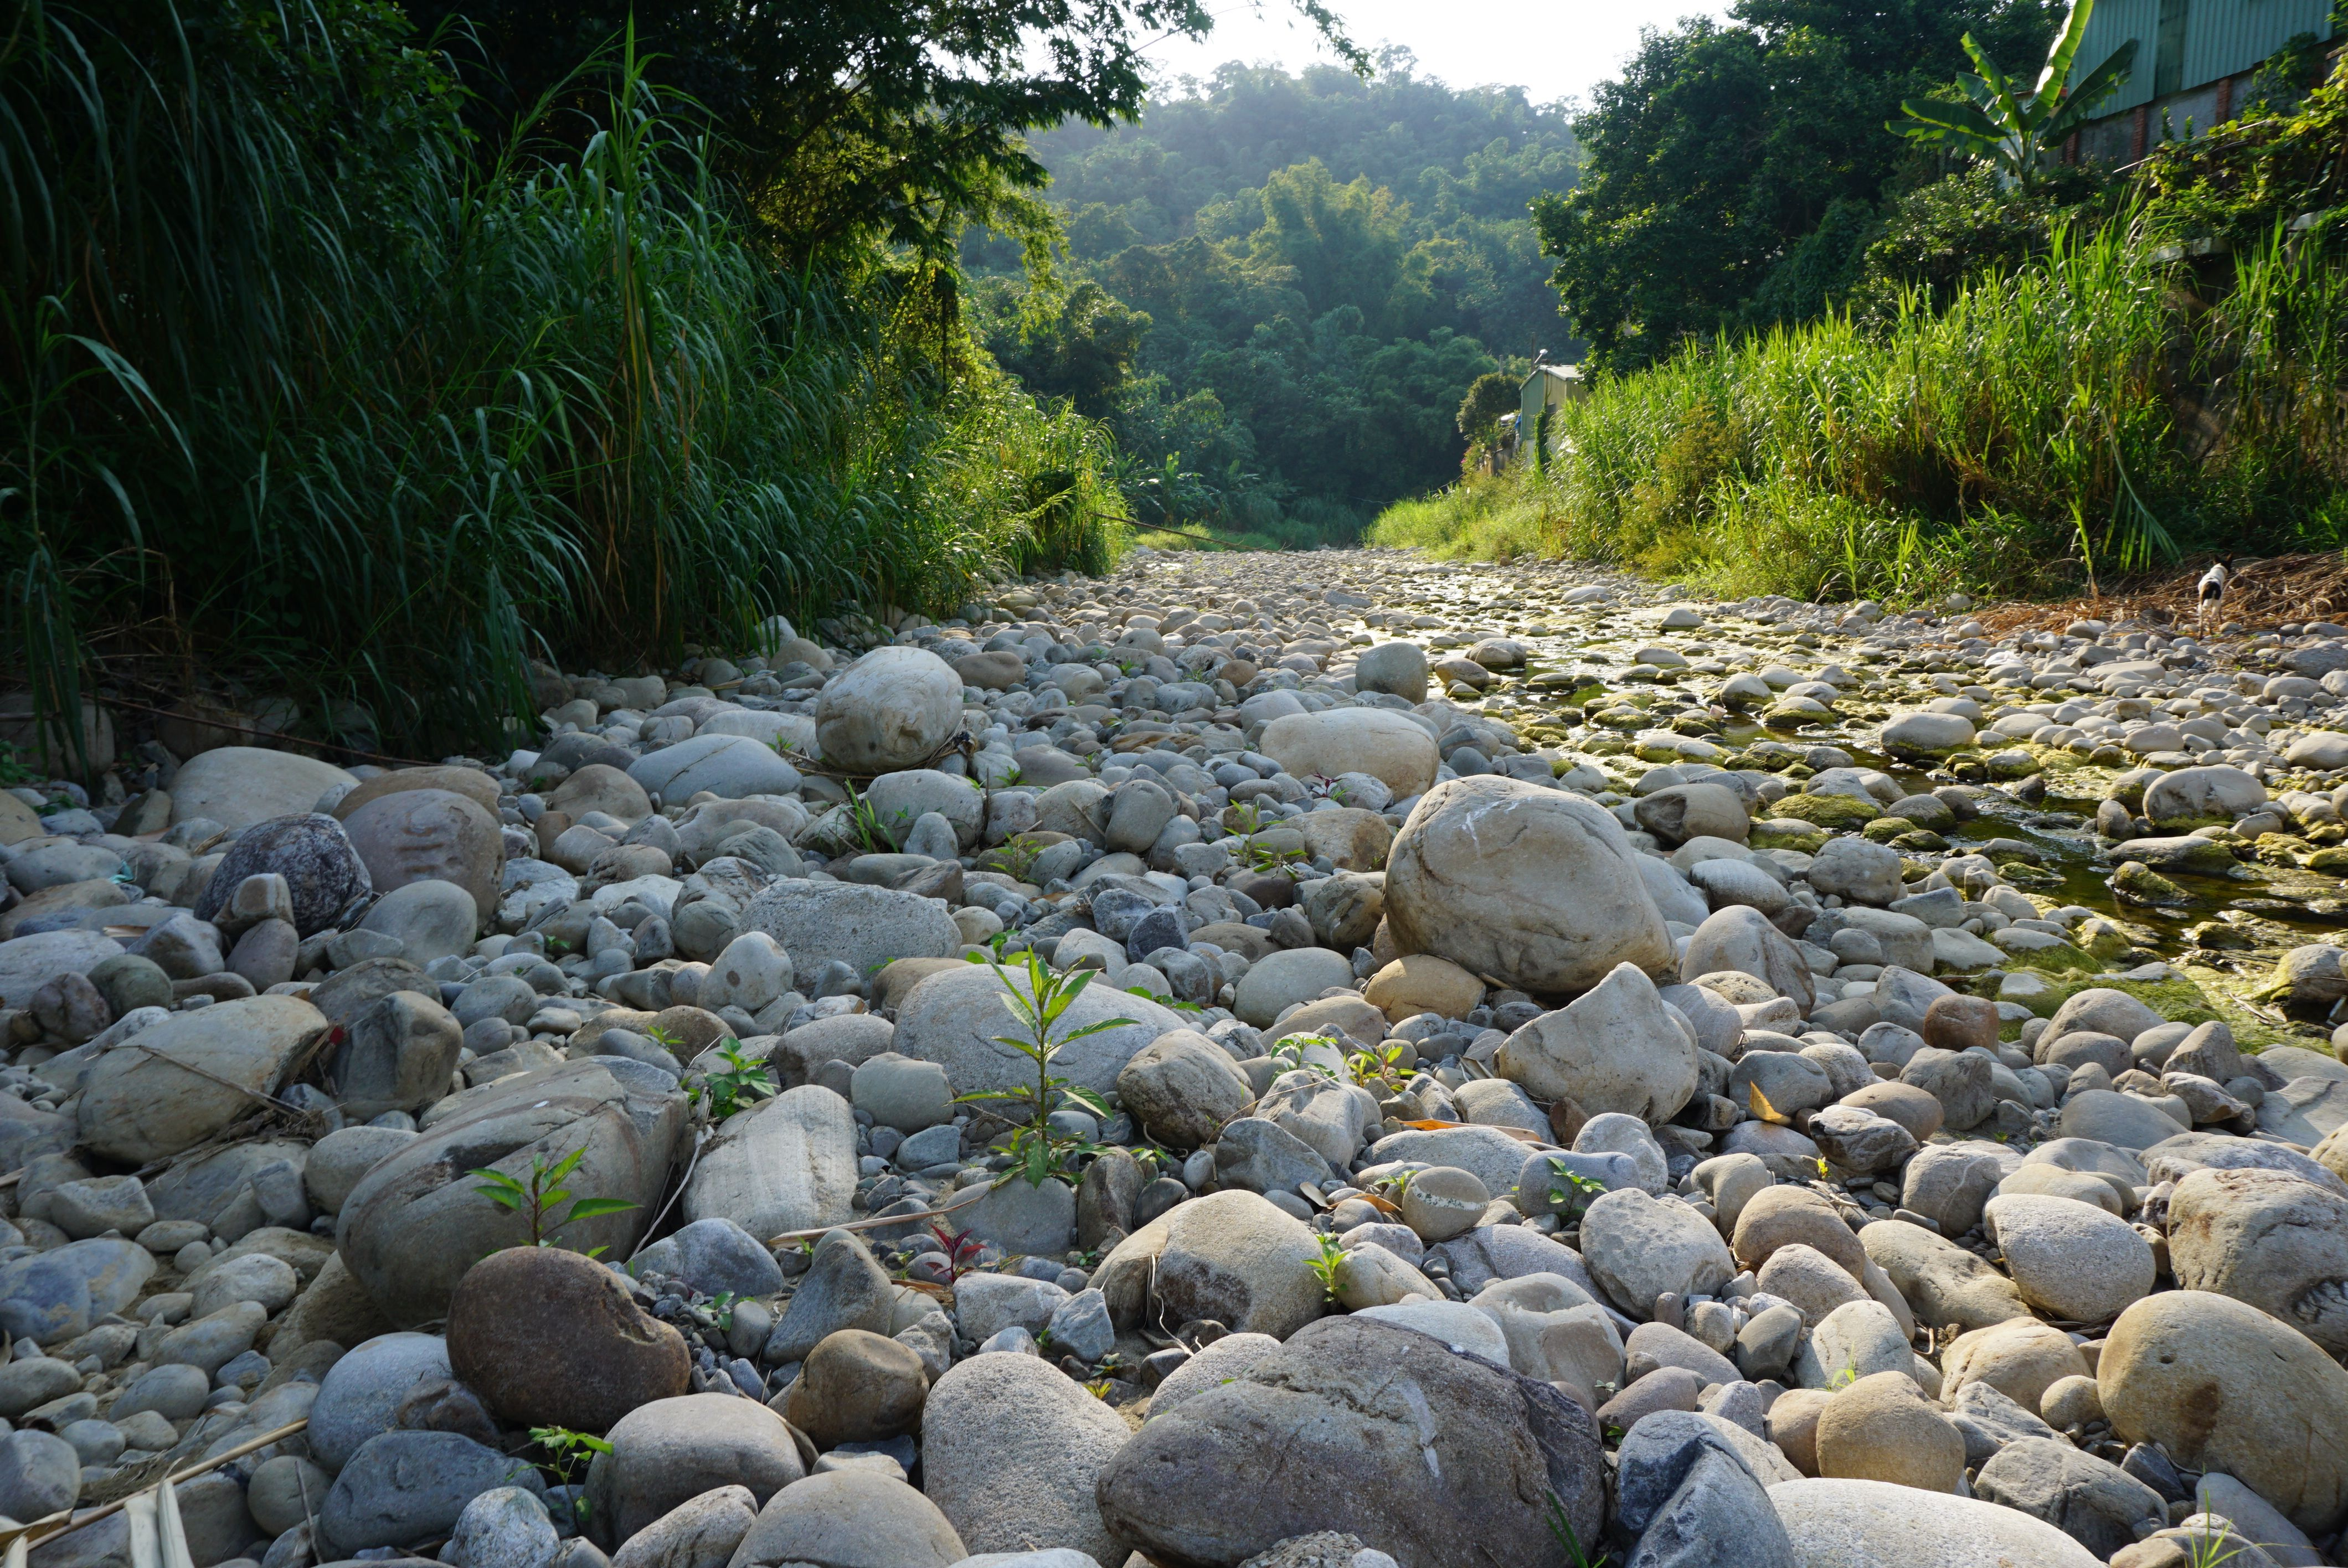 This Is A Small River In Taichung Taiwan It Is Home To